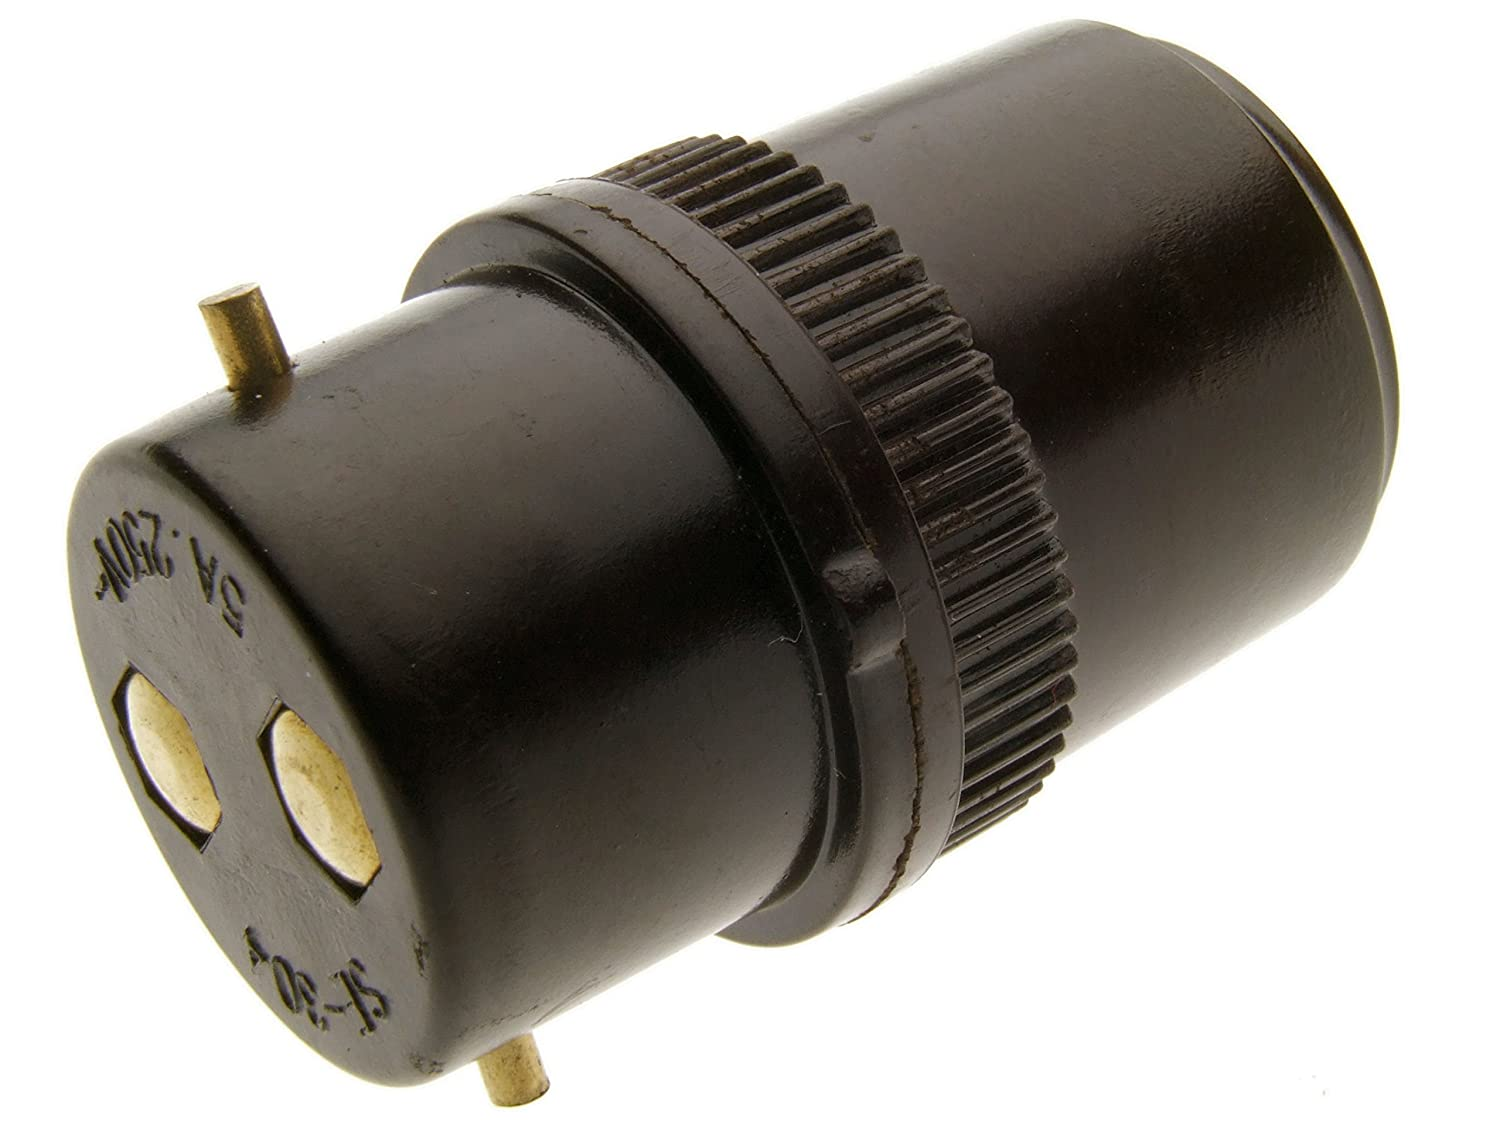 B22 Plug Bulb Socket Extension 5Amp Brown Bakelite Period Style ... for Bulb Holder With Plug  70ref